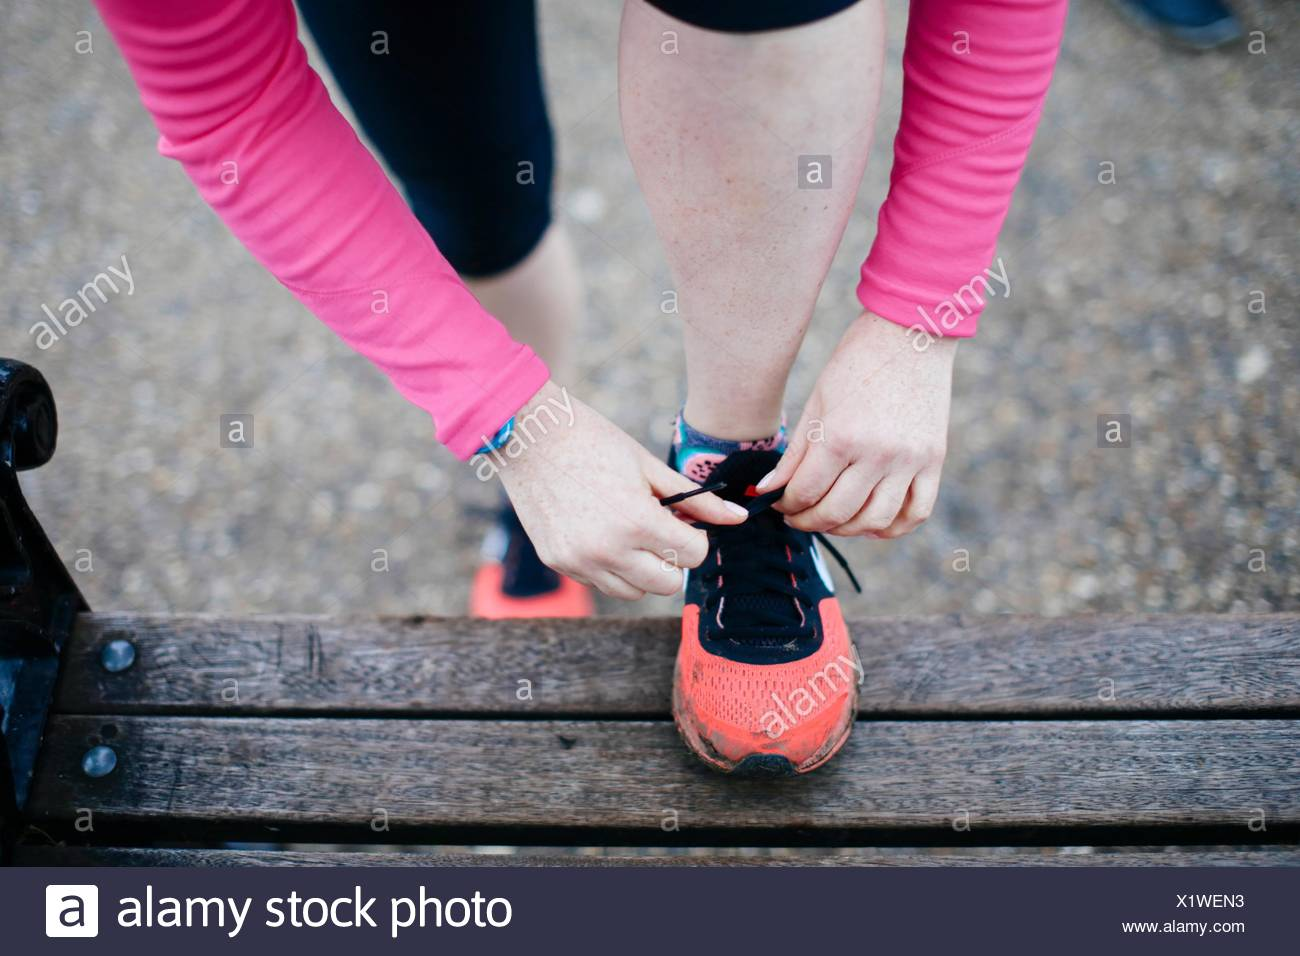 Overhead cropped view of woman tying trainer laces on park bench - Stock Image